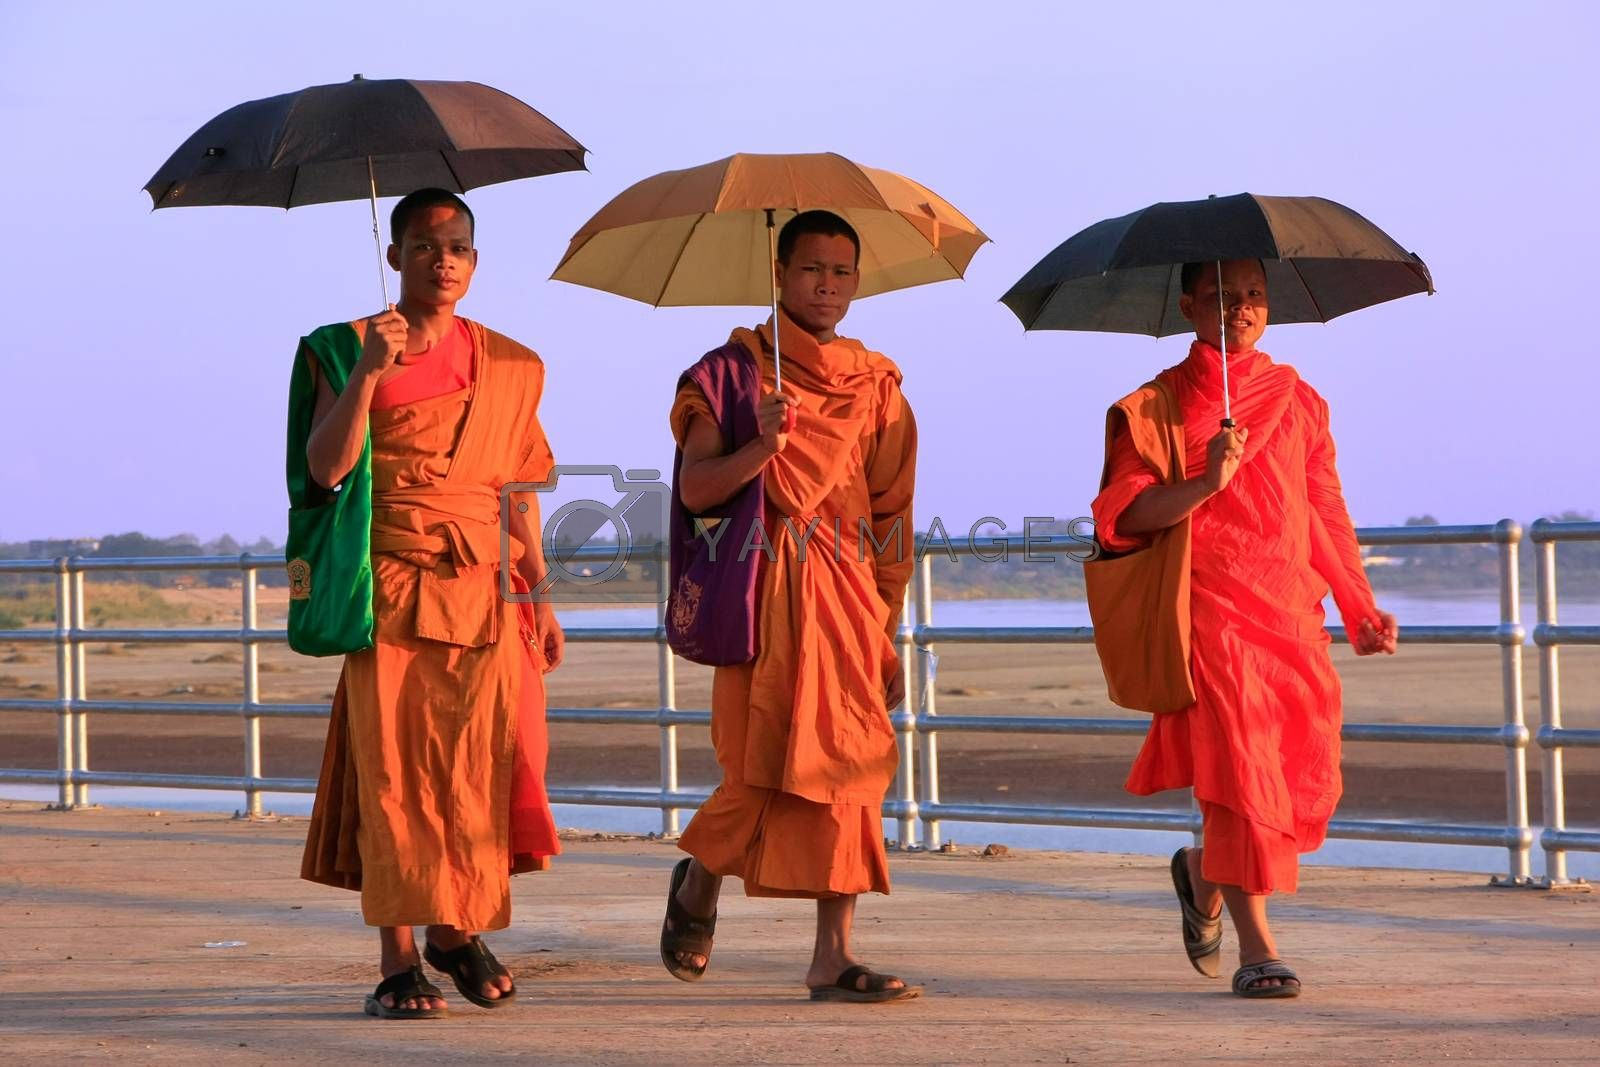 Royalty free image of Monks with umbrellas walking near Mekong river, Vientiane, Laos by donya_nedomam